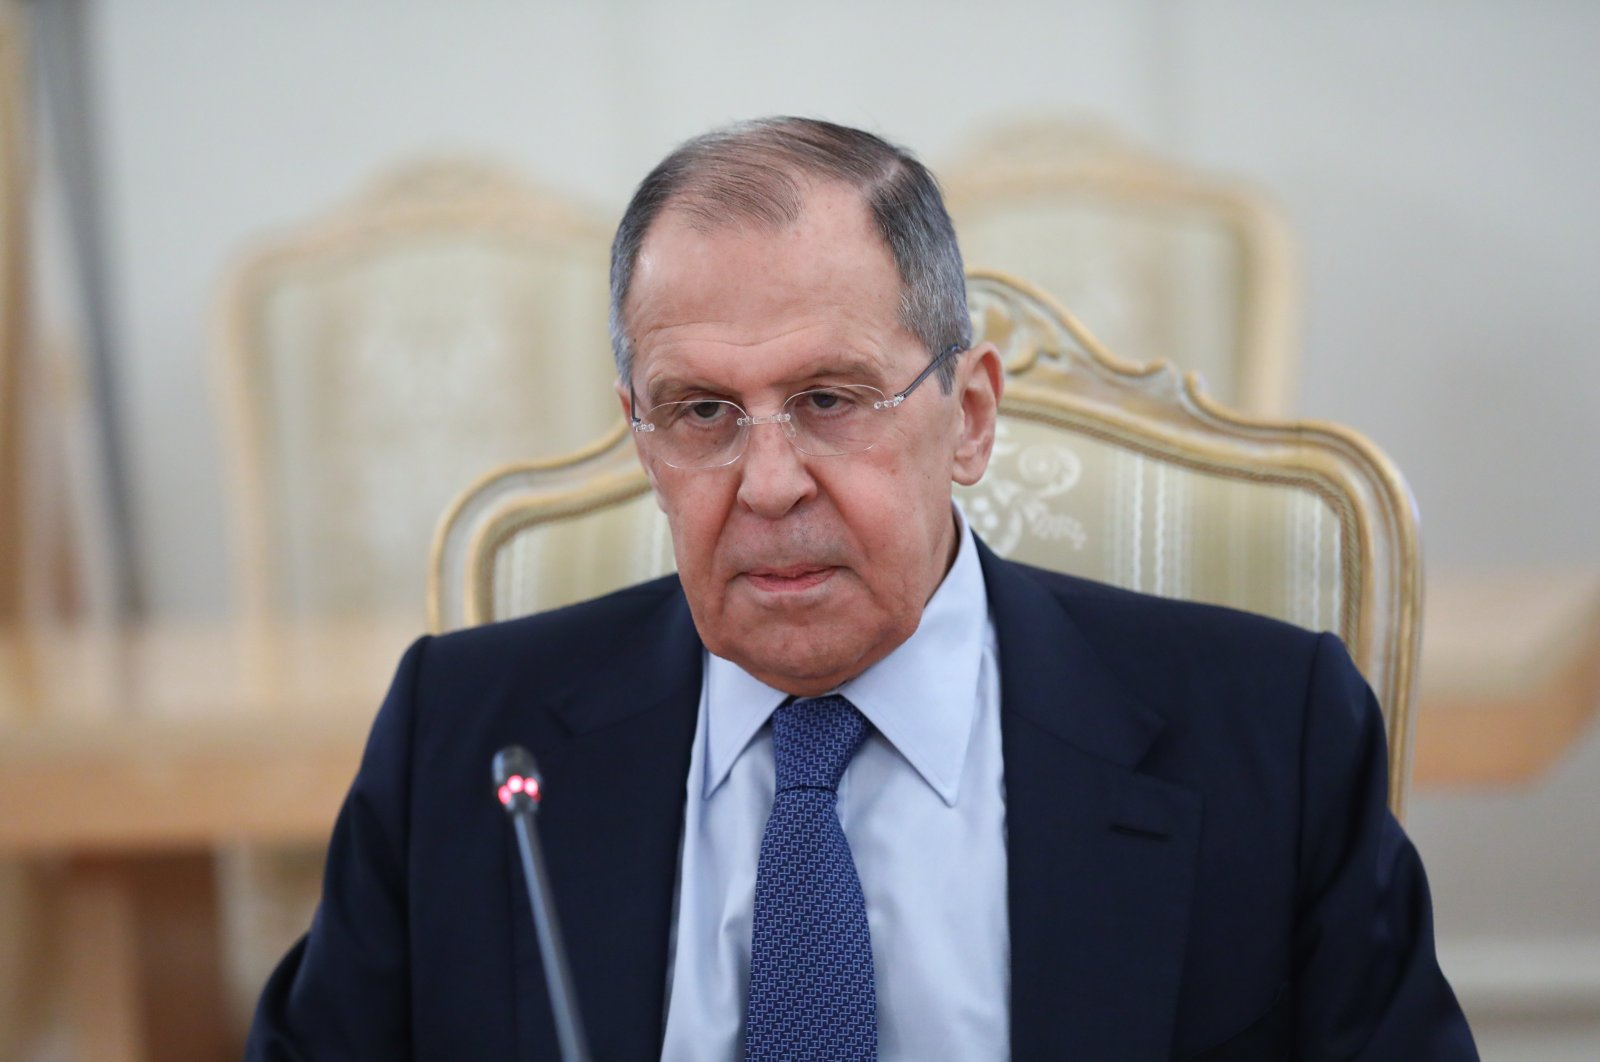 Russian Foreign Minister Sergei Lavrov during talks with Serbian Foreign Minister Nikola Selakovic (not pictured) in Moscow, Russia, 16 April 2021. (Russian Foreign Ministry handout photo via EPA)